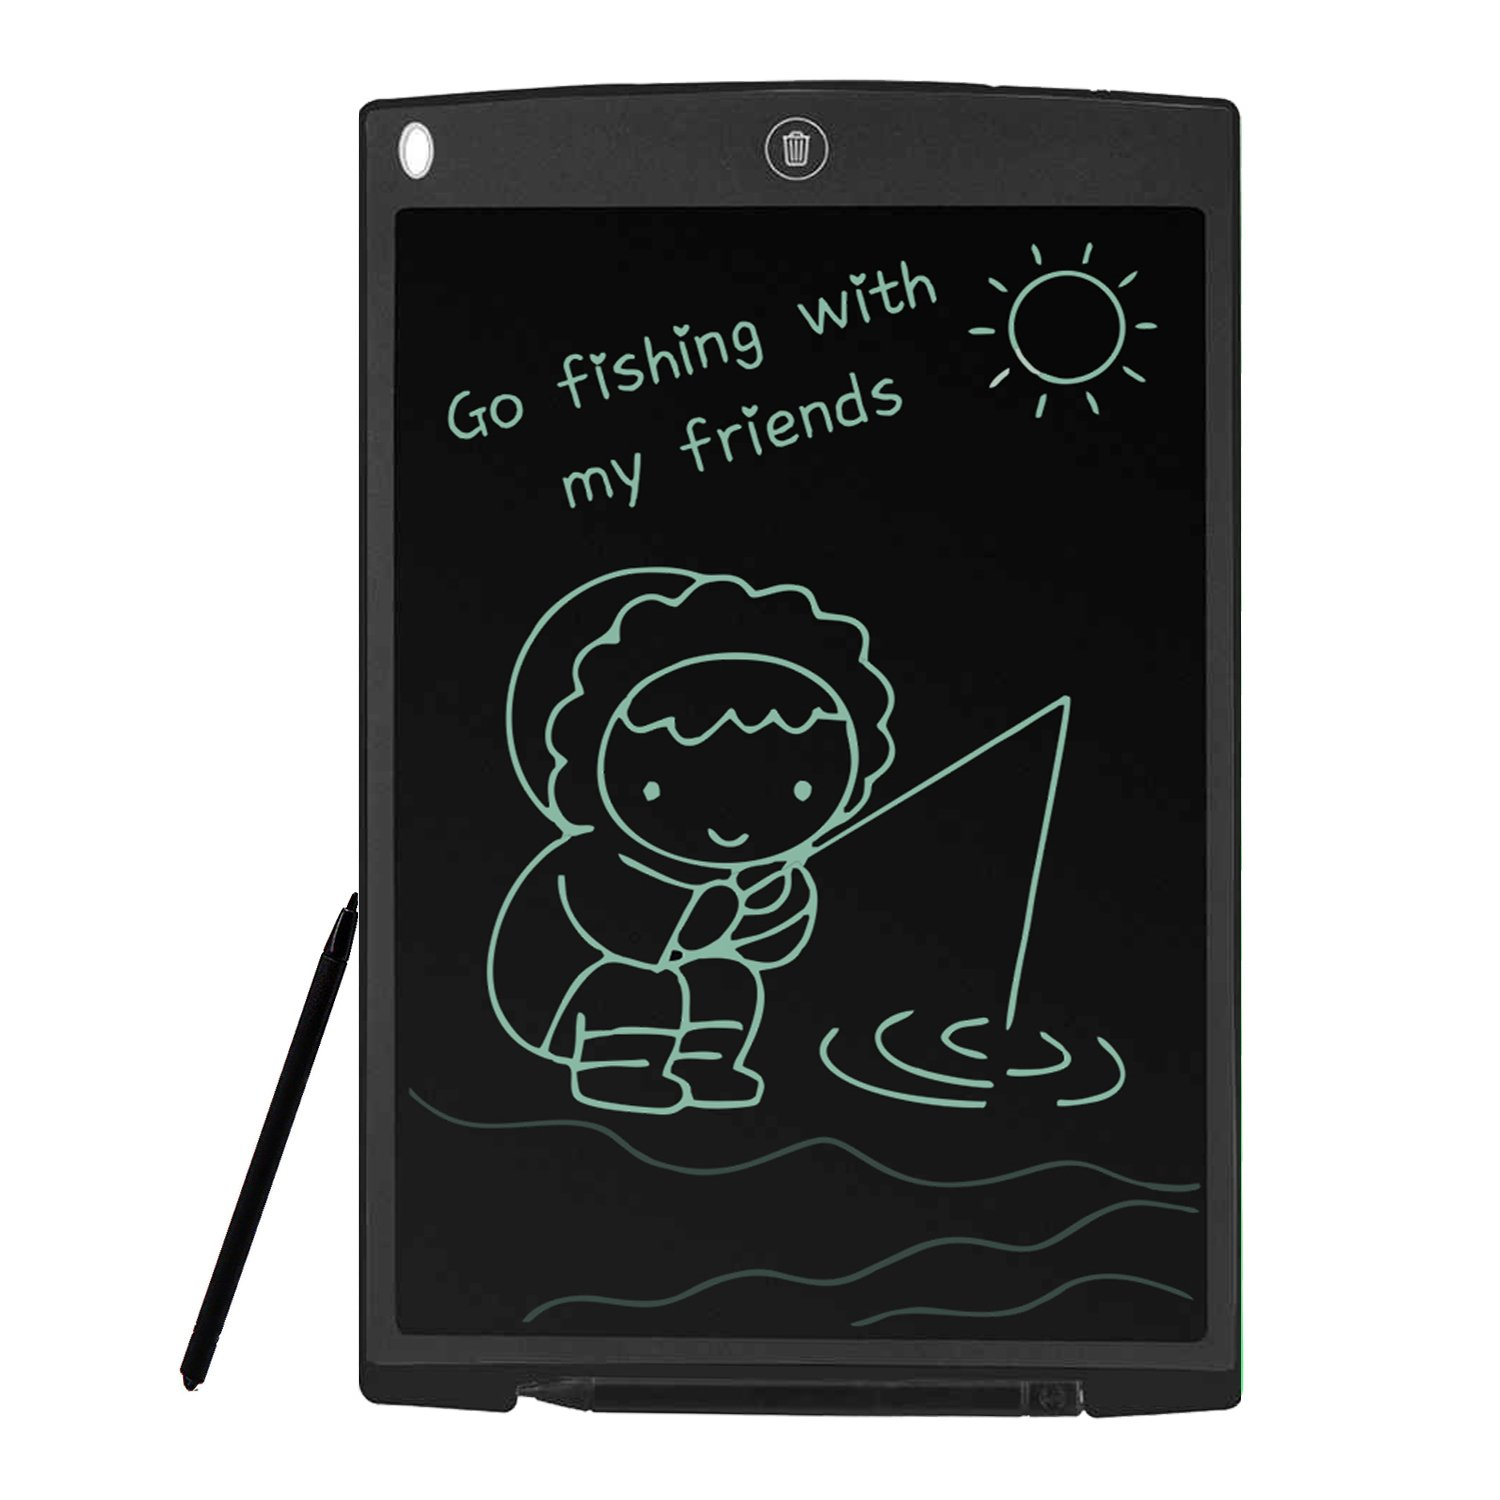 12-Inch Lcd Writing Board For Brighter Writing And Locking To Prevent Accidental Deletion Of Office Home Doodle Drawing Gifts For Children And Adults